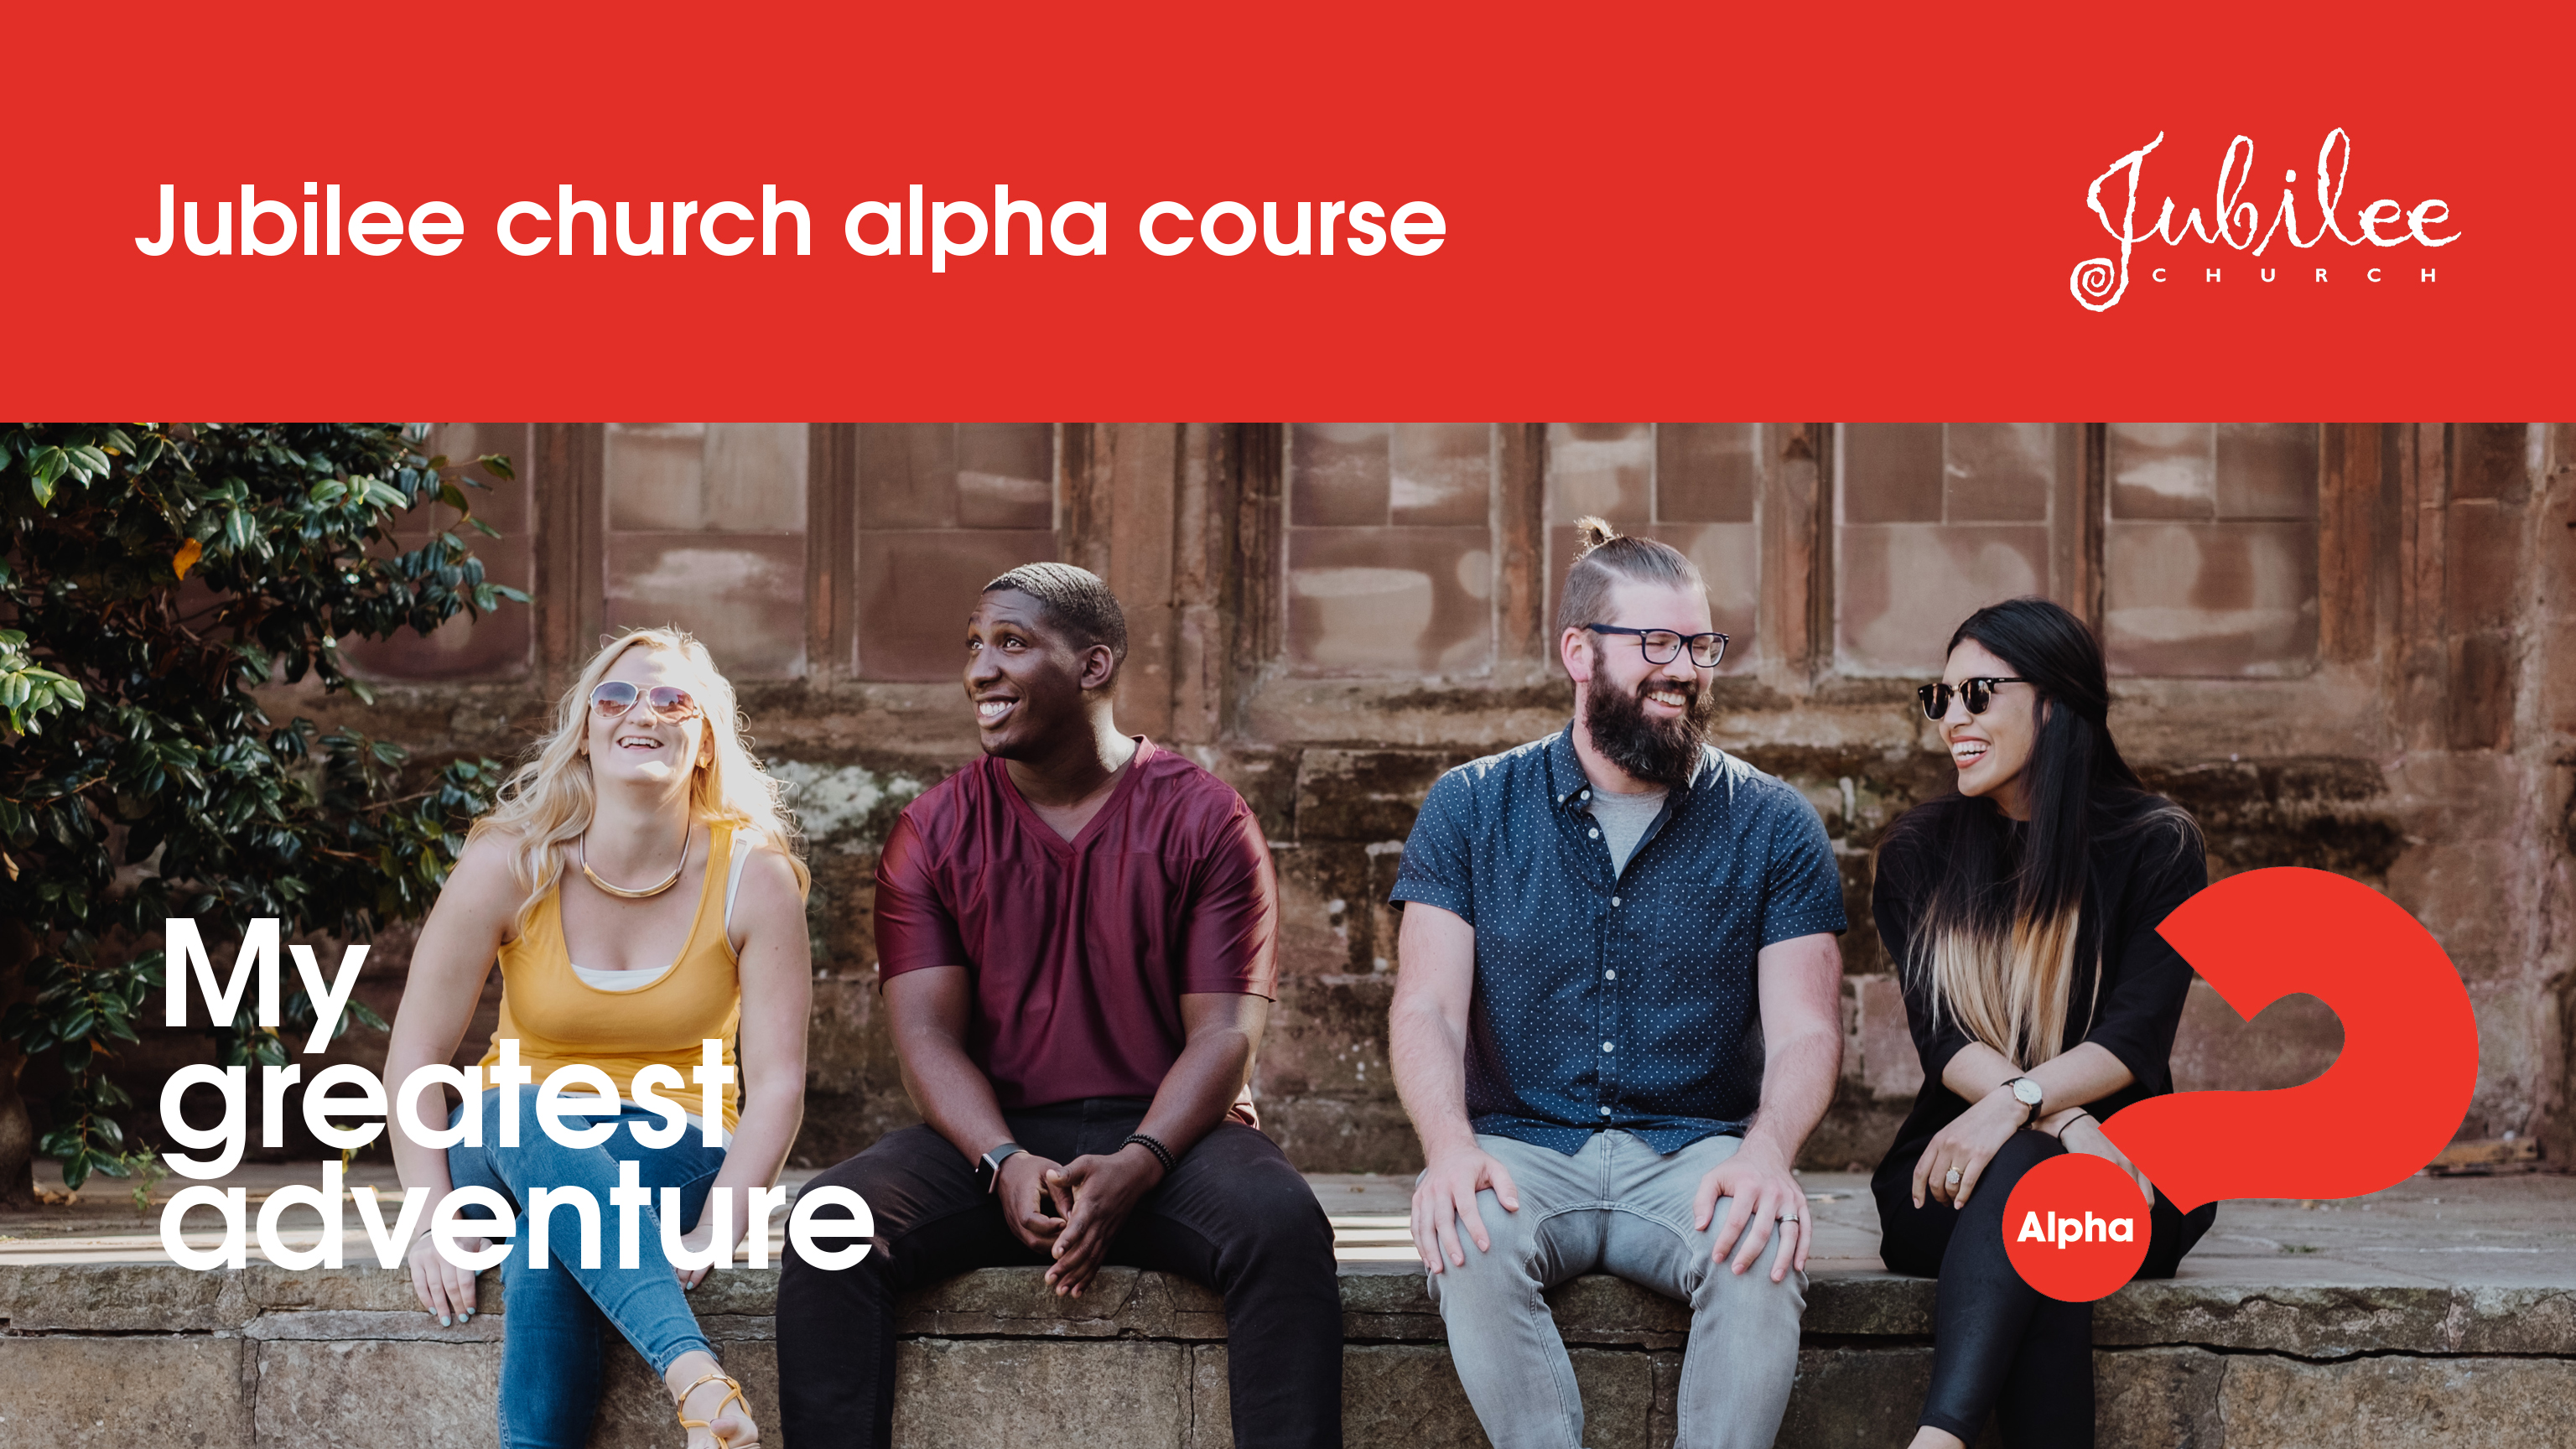 Jubilee Church Alpha course